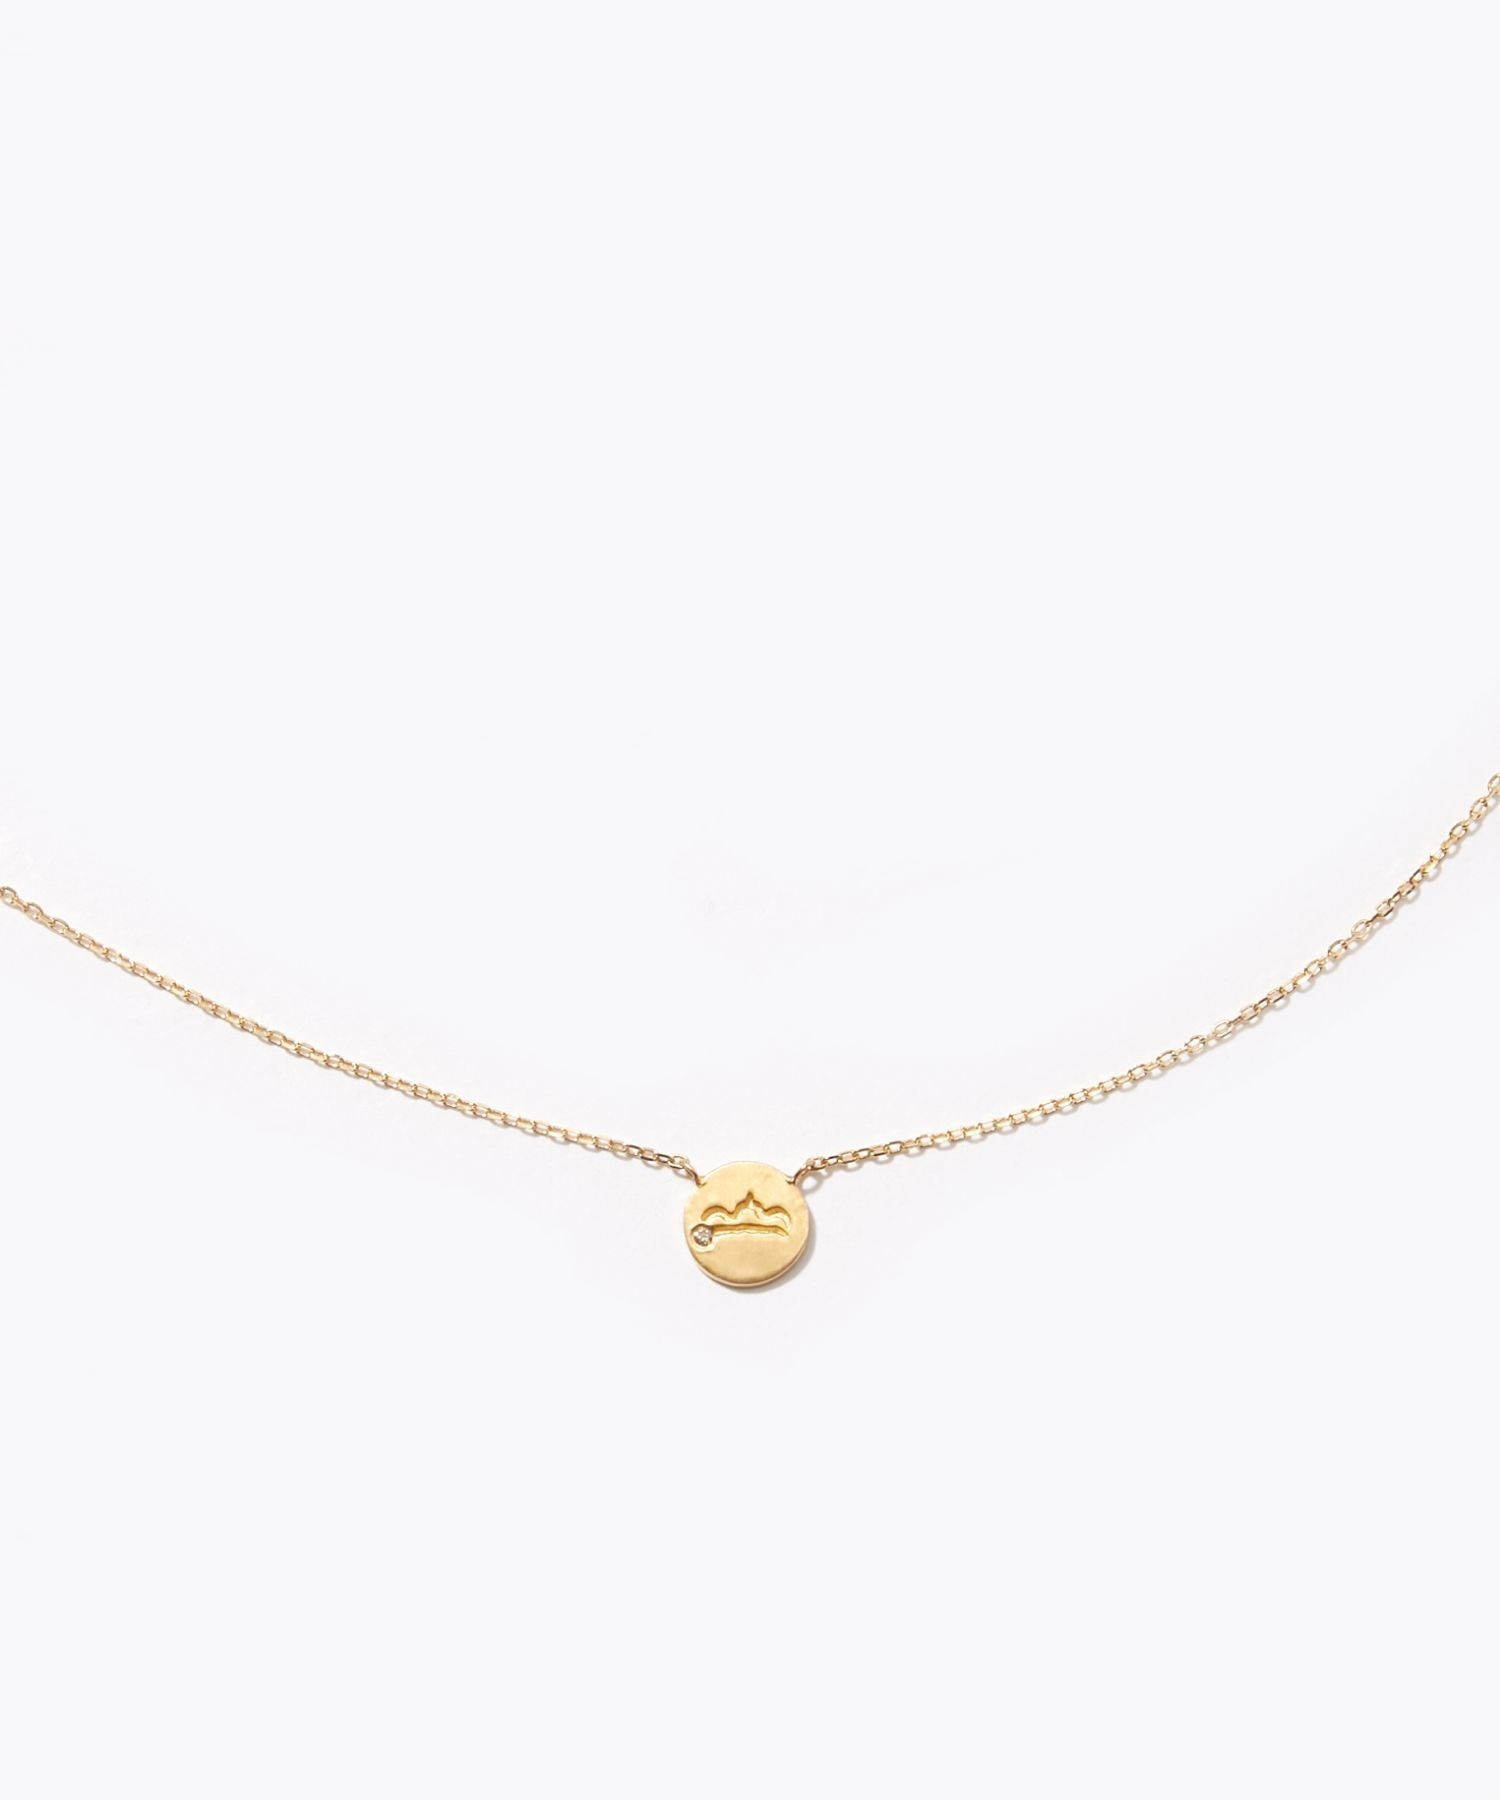 [constellation] Libra K10 diamond petit medal necklace